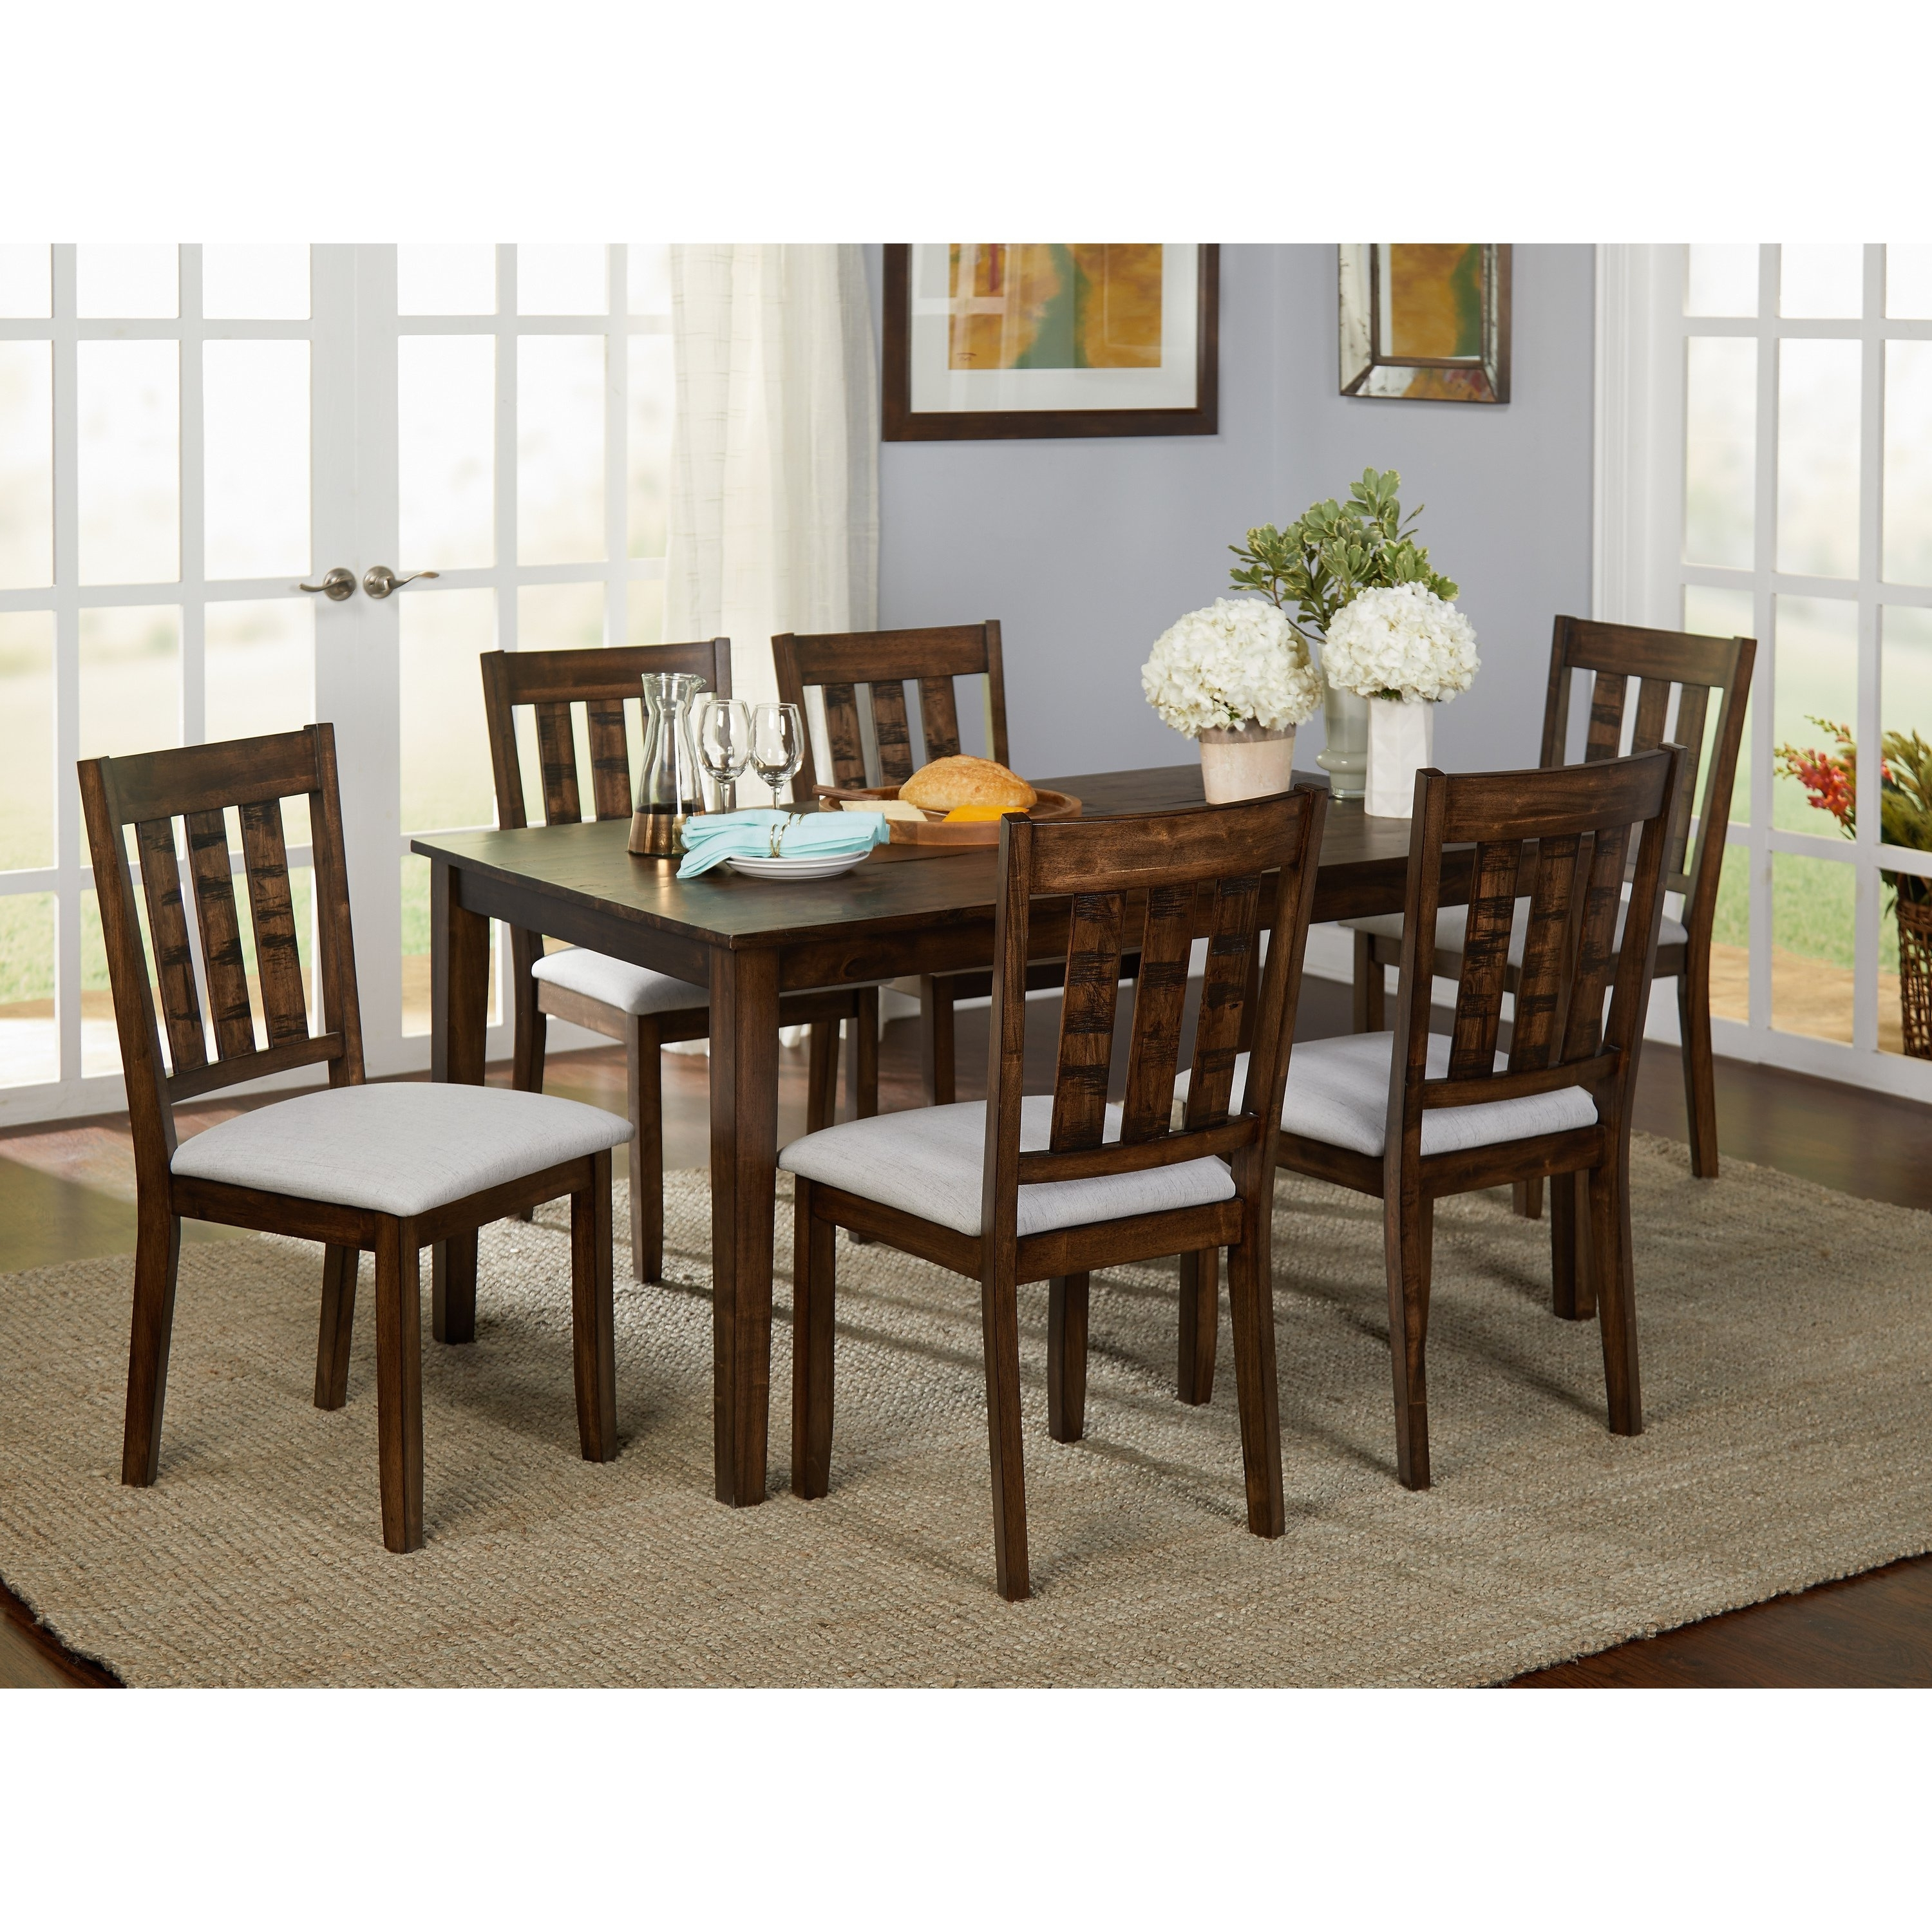 Newest 7 Gorgeous Cheap Dining Room Sets Under 200 Bucks Color In Jaxon Grey 7 Piece Rectangle Extension Dining Sets With Wood Chairs (Gallery 21 of 25)